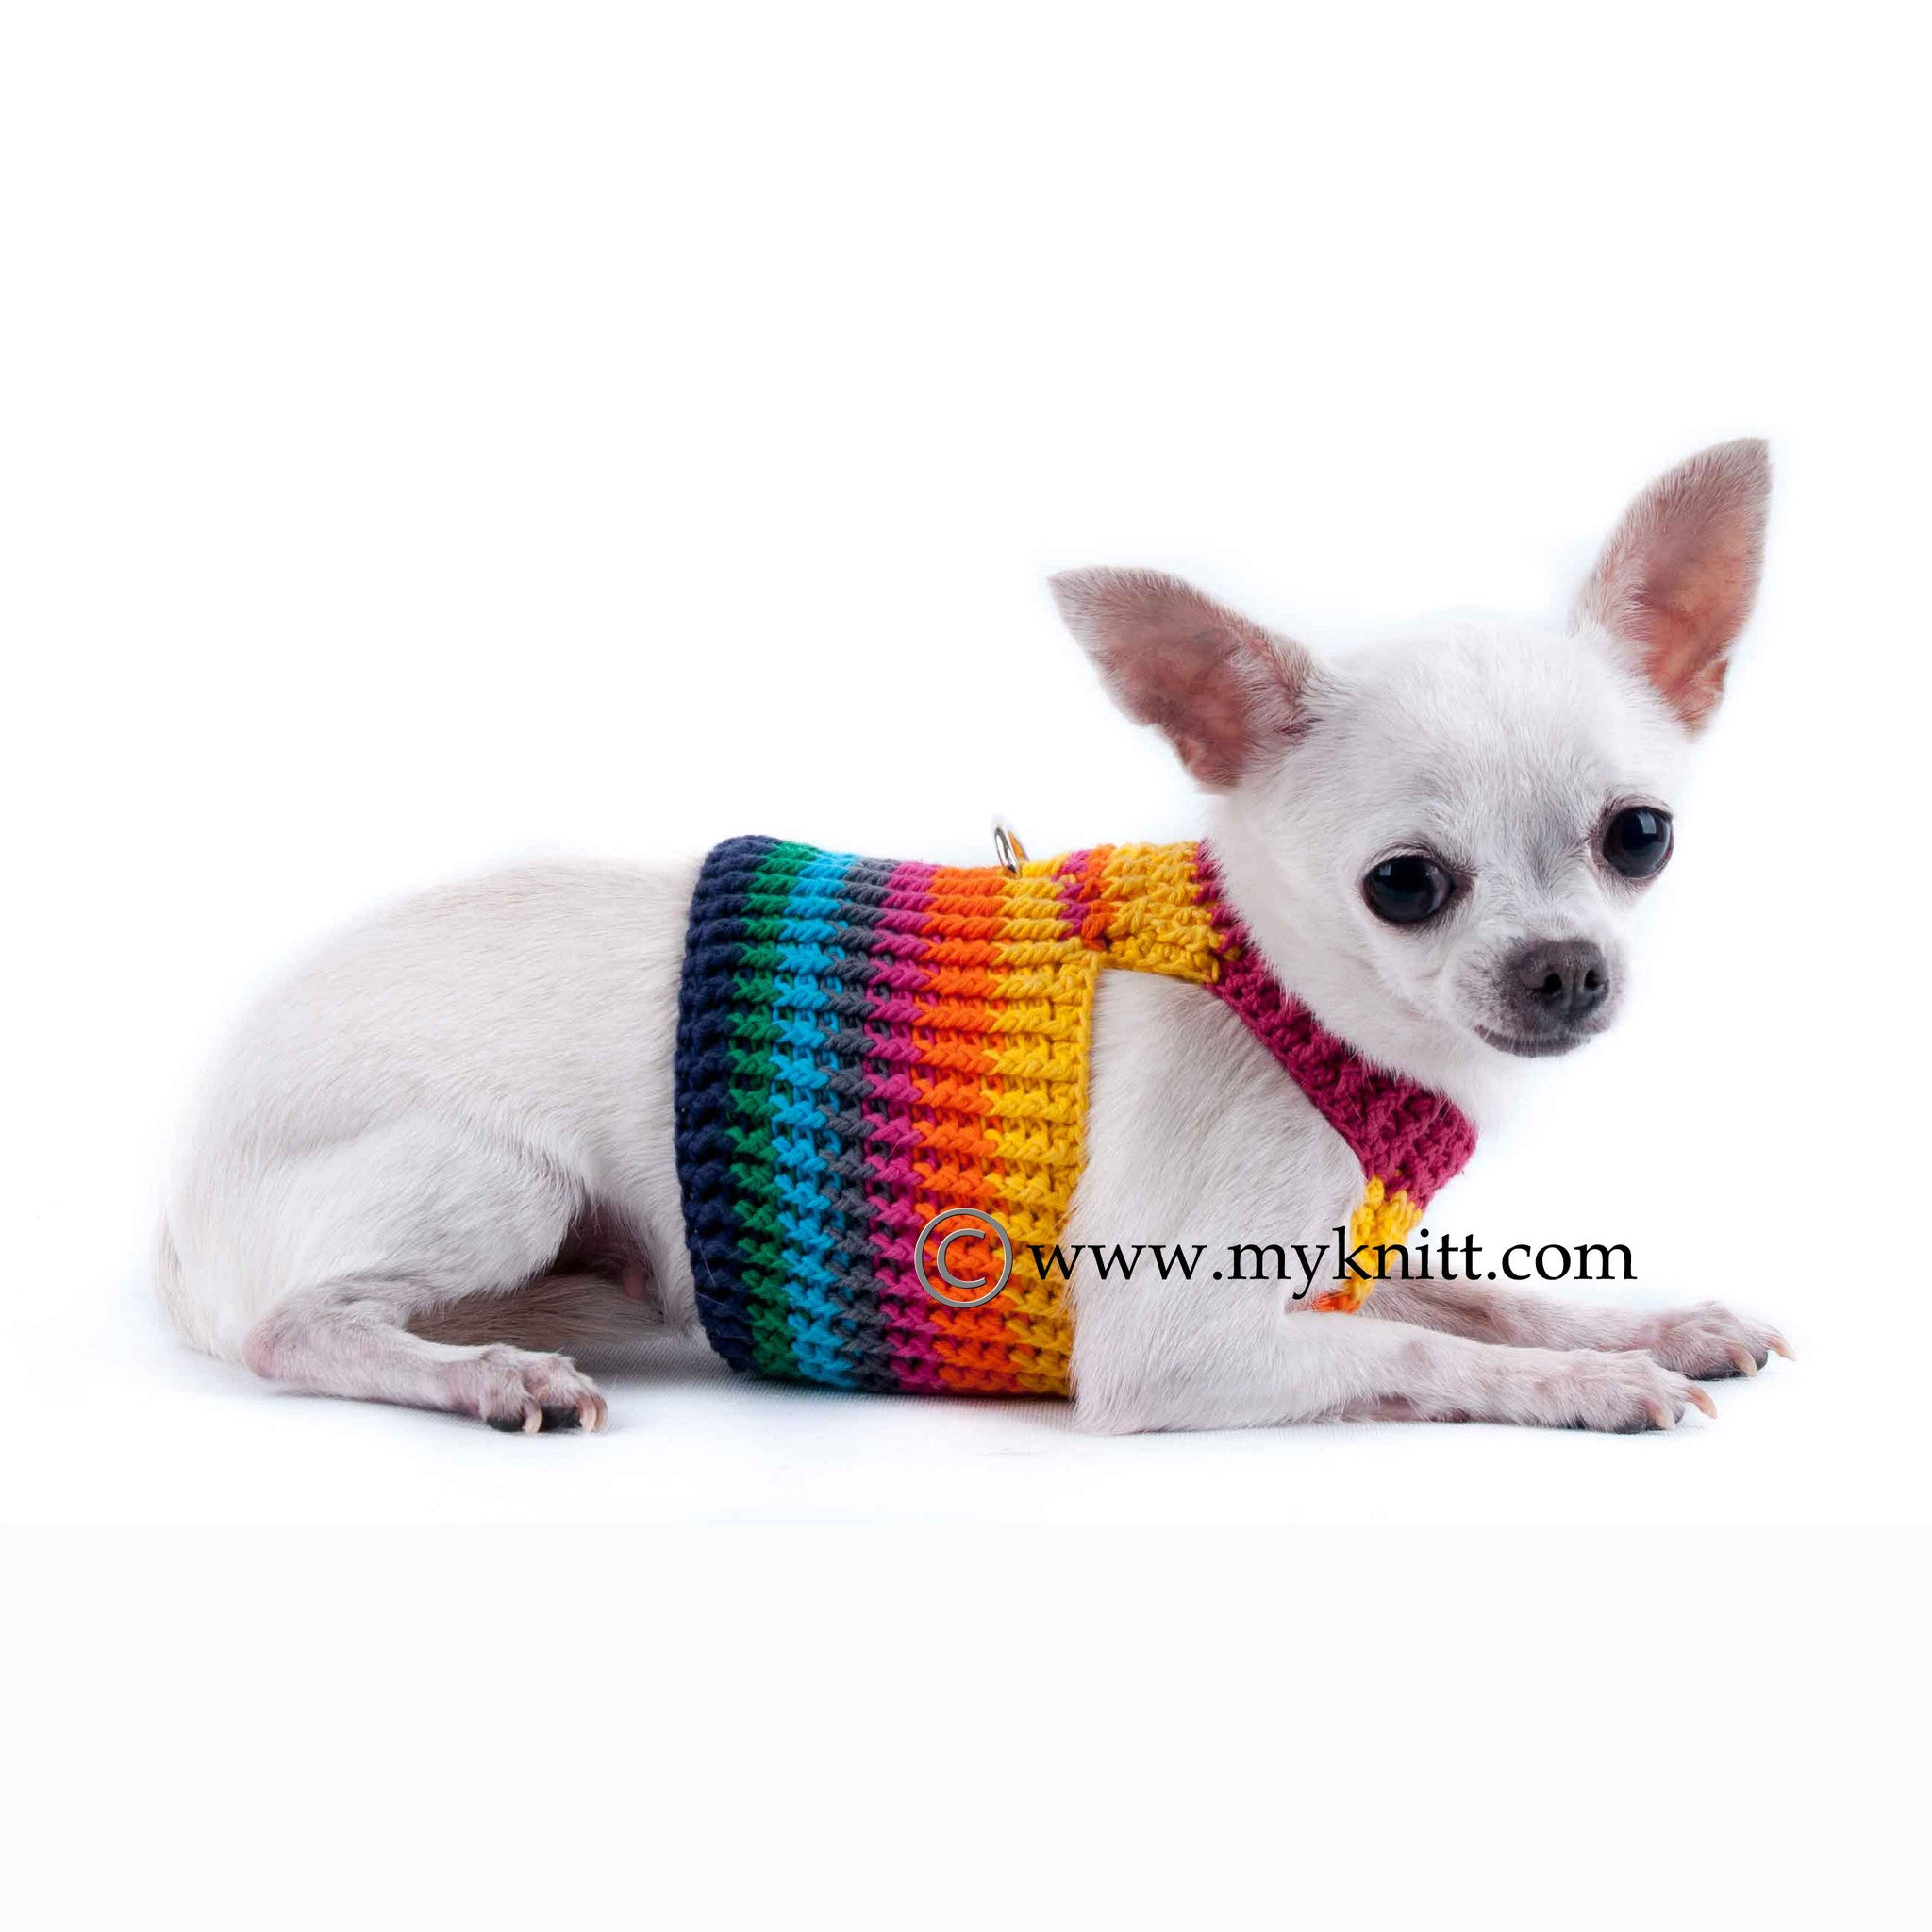 DH5_1?v=1457681309 cute dog harness rainbow colorful cotton choke free crochet dh5